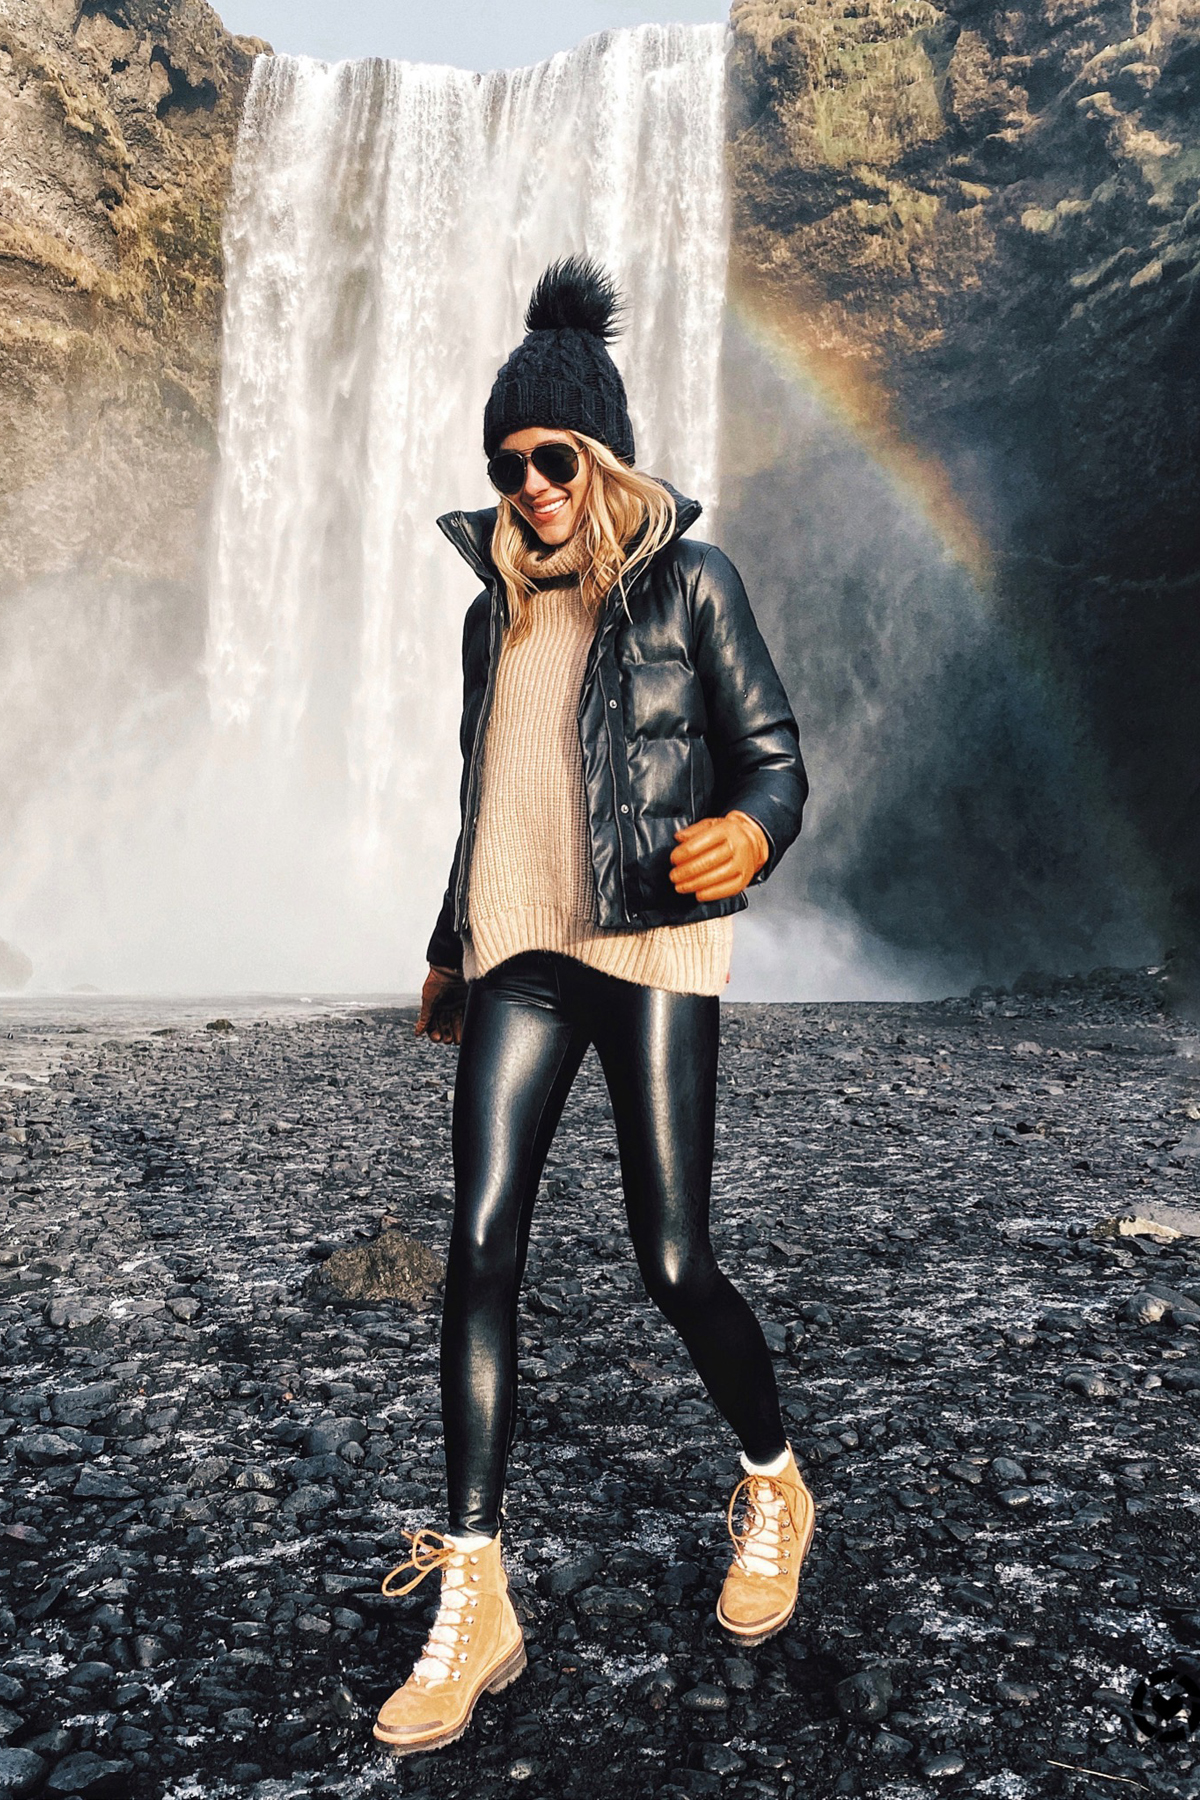 Fashion Jackson Wearing Black Puffer Jacket Black Faux Leather Leggings Winter Boots Black Beanie Outfit Skogafoss Waterfall Iceland Itinerary